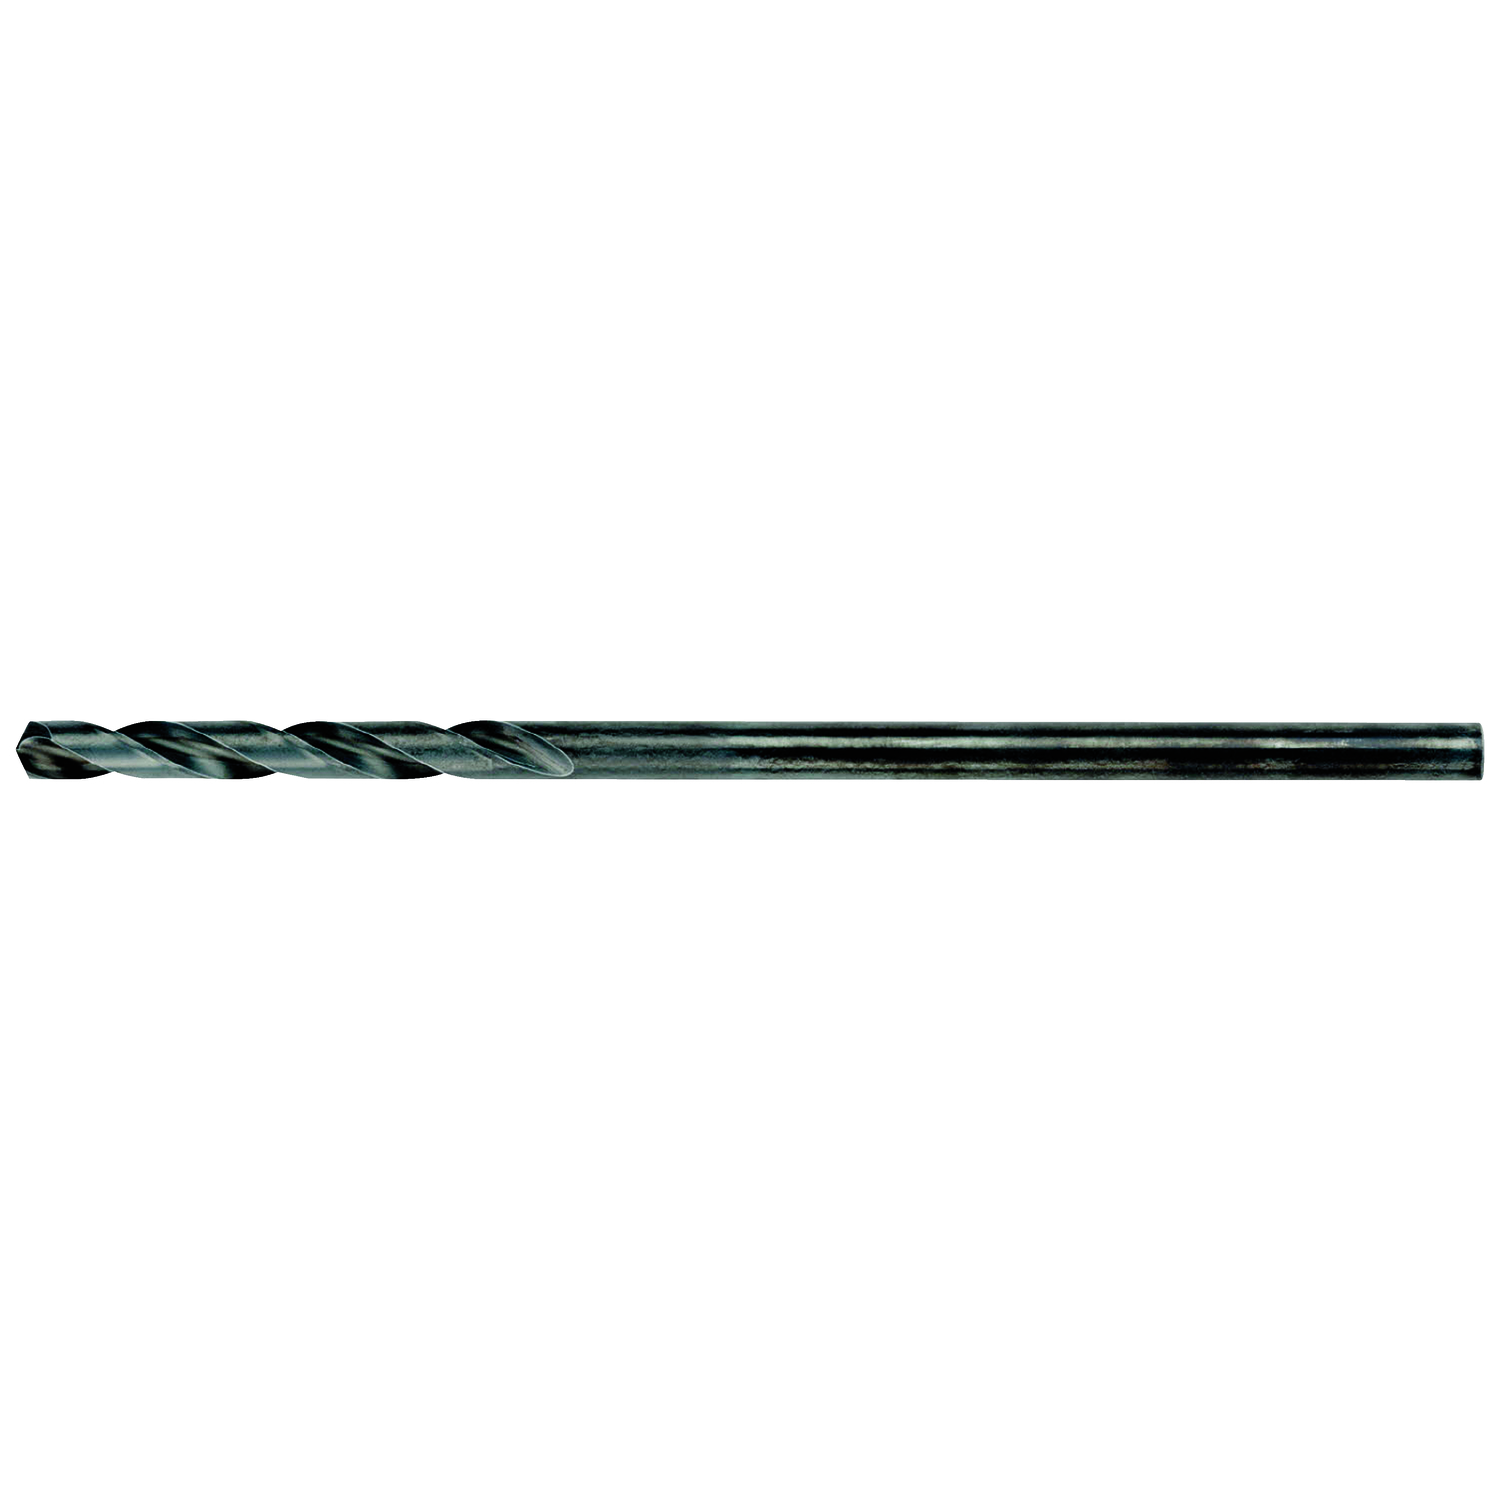 Irwin  Aircraft Extension  1/2 in. Dia. x 12 in. L High Speed Steel  Split Point Drill Bit  Straight